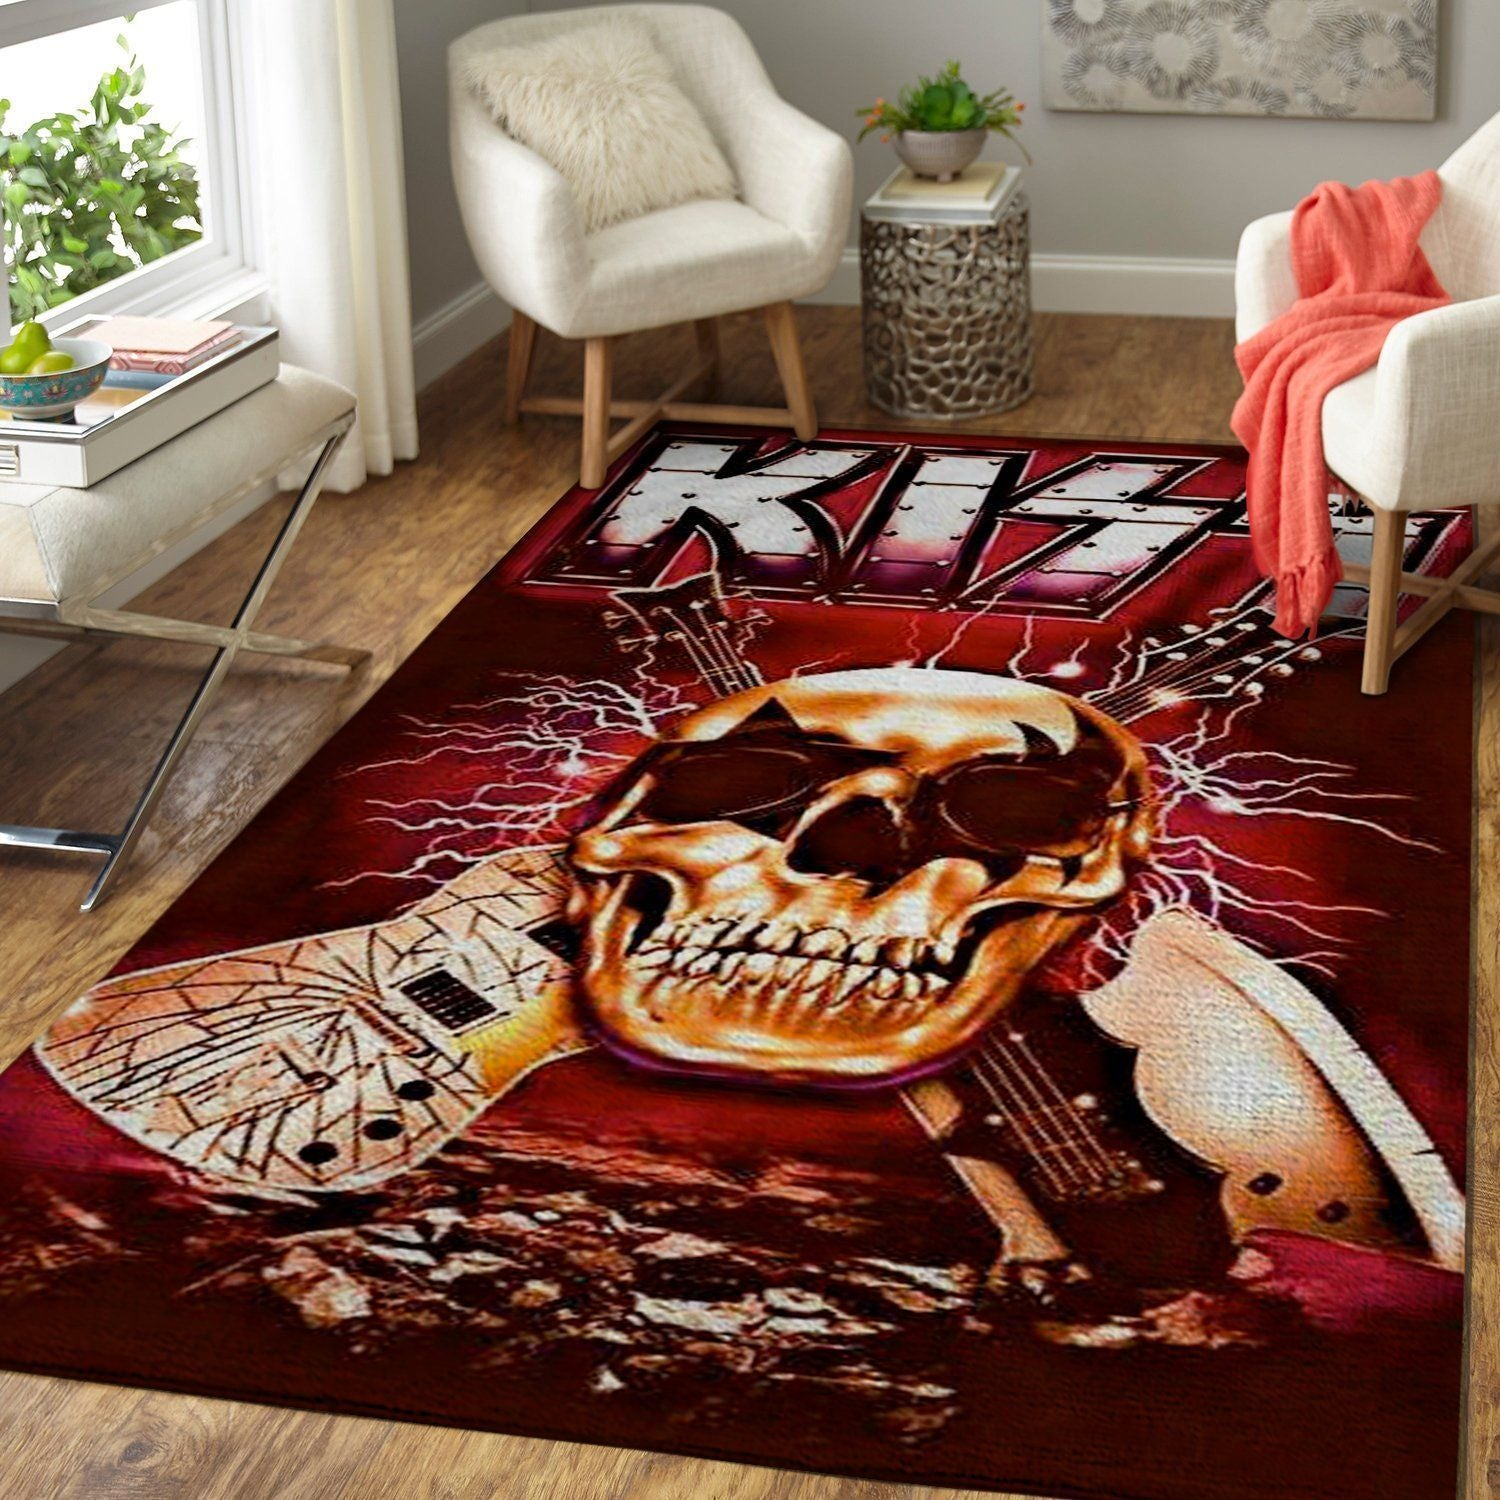 Kiss - Rock Band Area Rug / Music OFD 191012